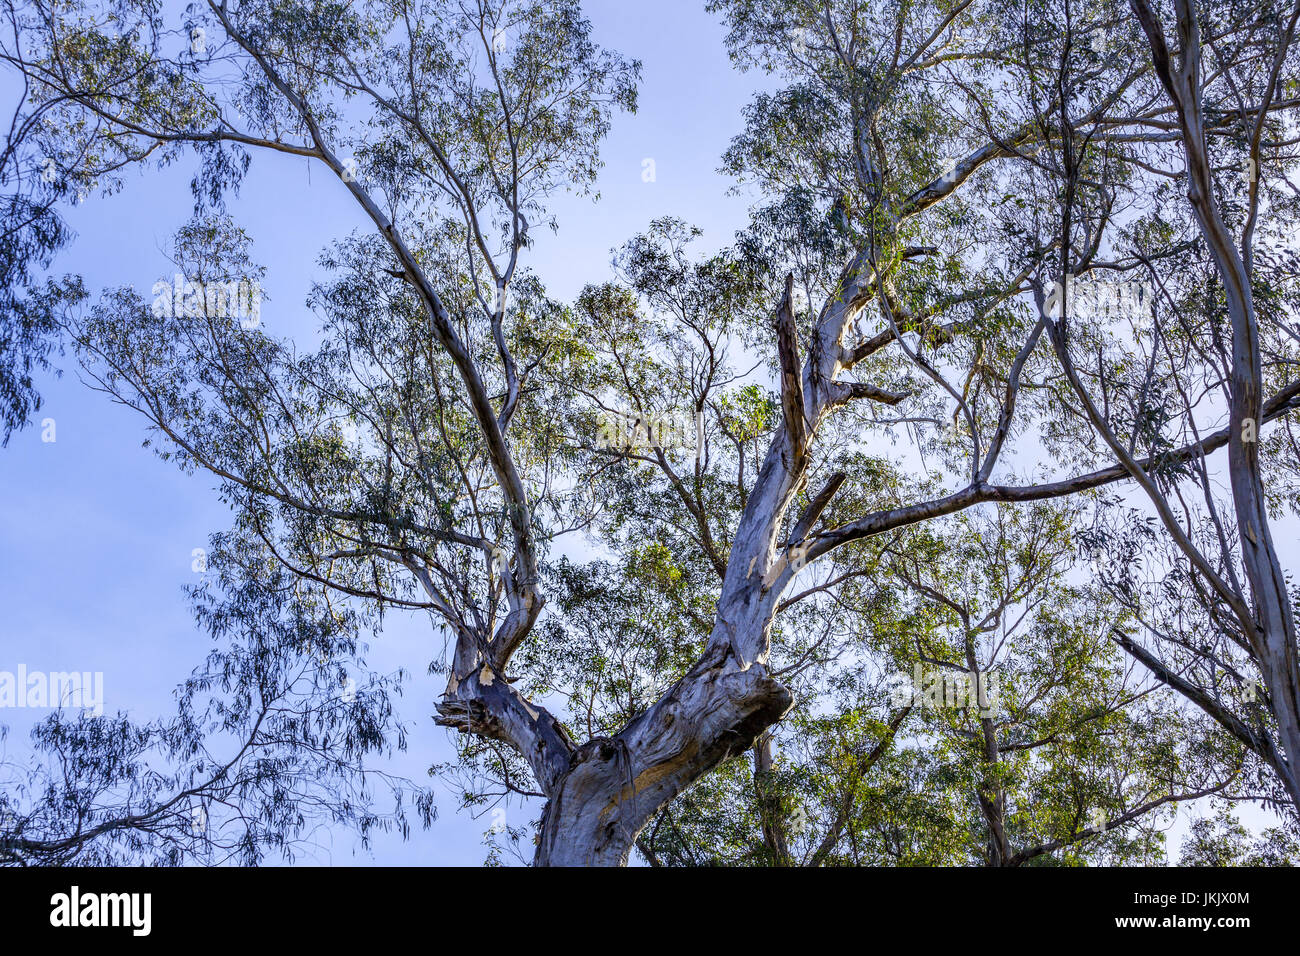 Australian native blue gum tree looking up at the sky - Stock Image